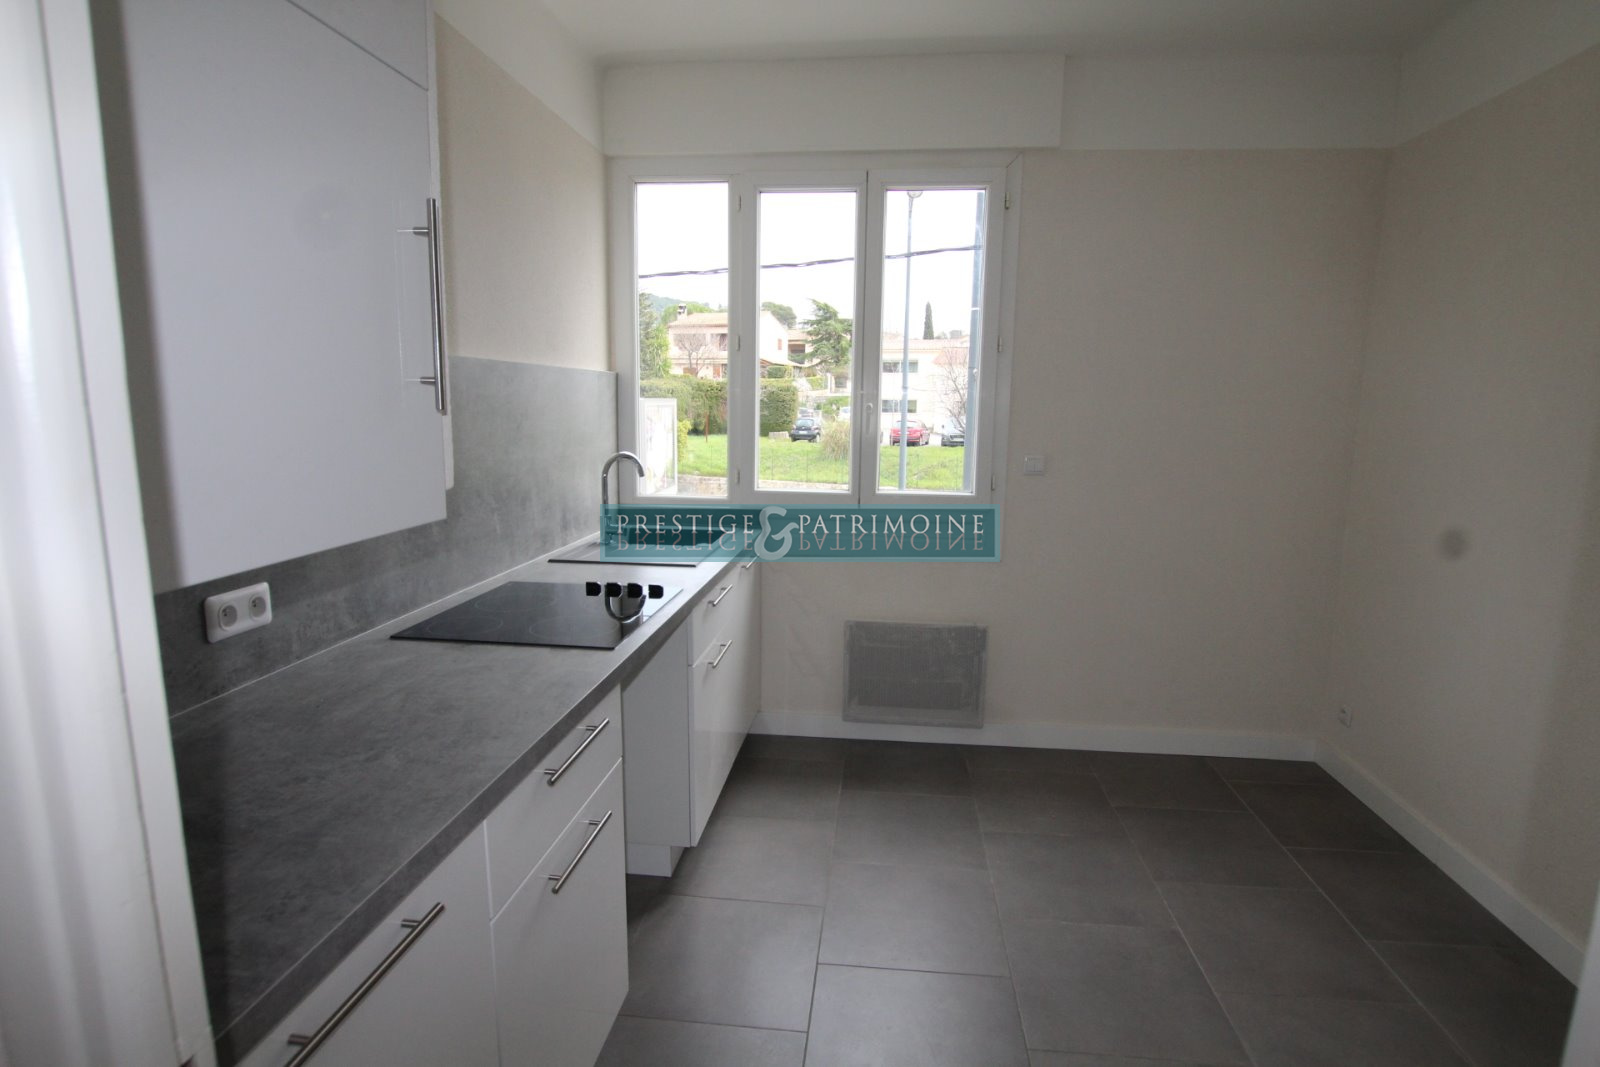 Offres de location Appartements Mougins (06250)